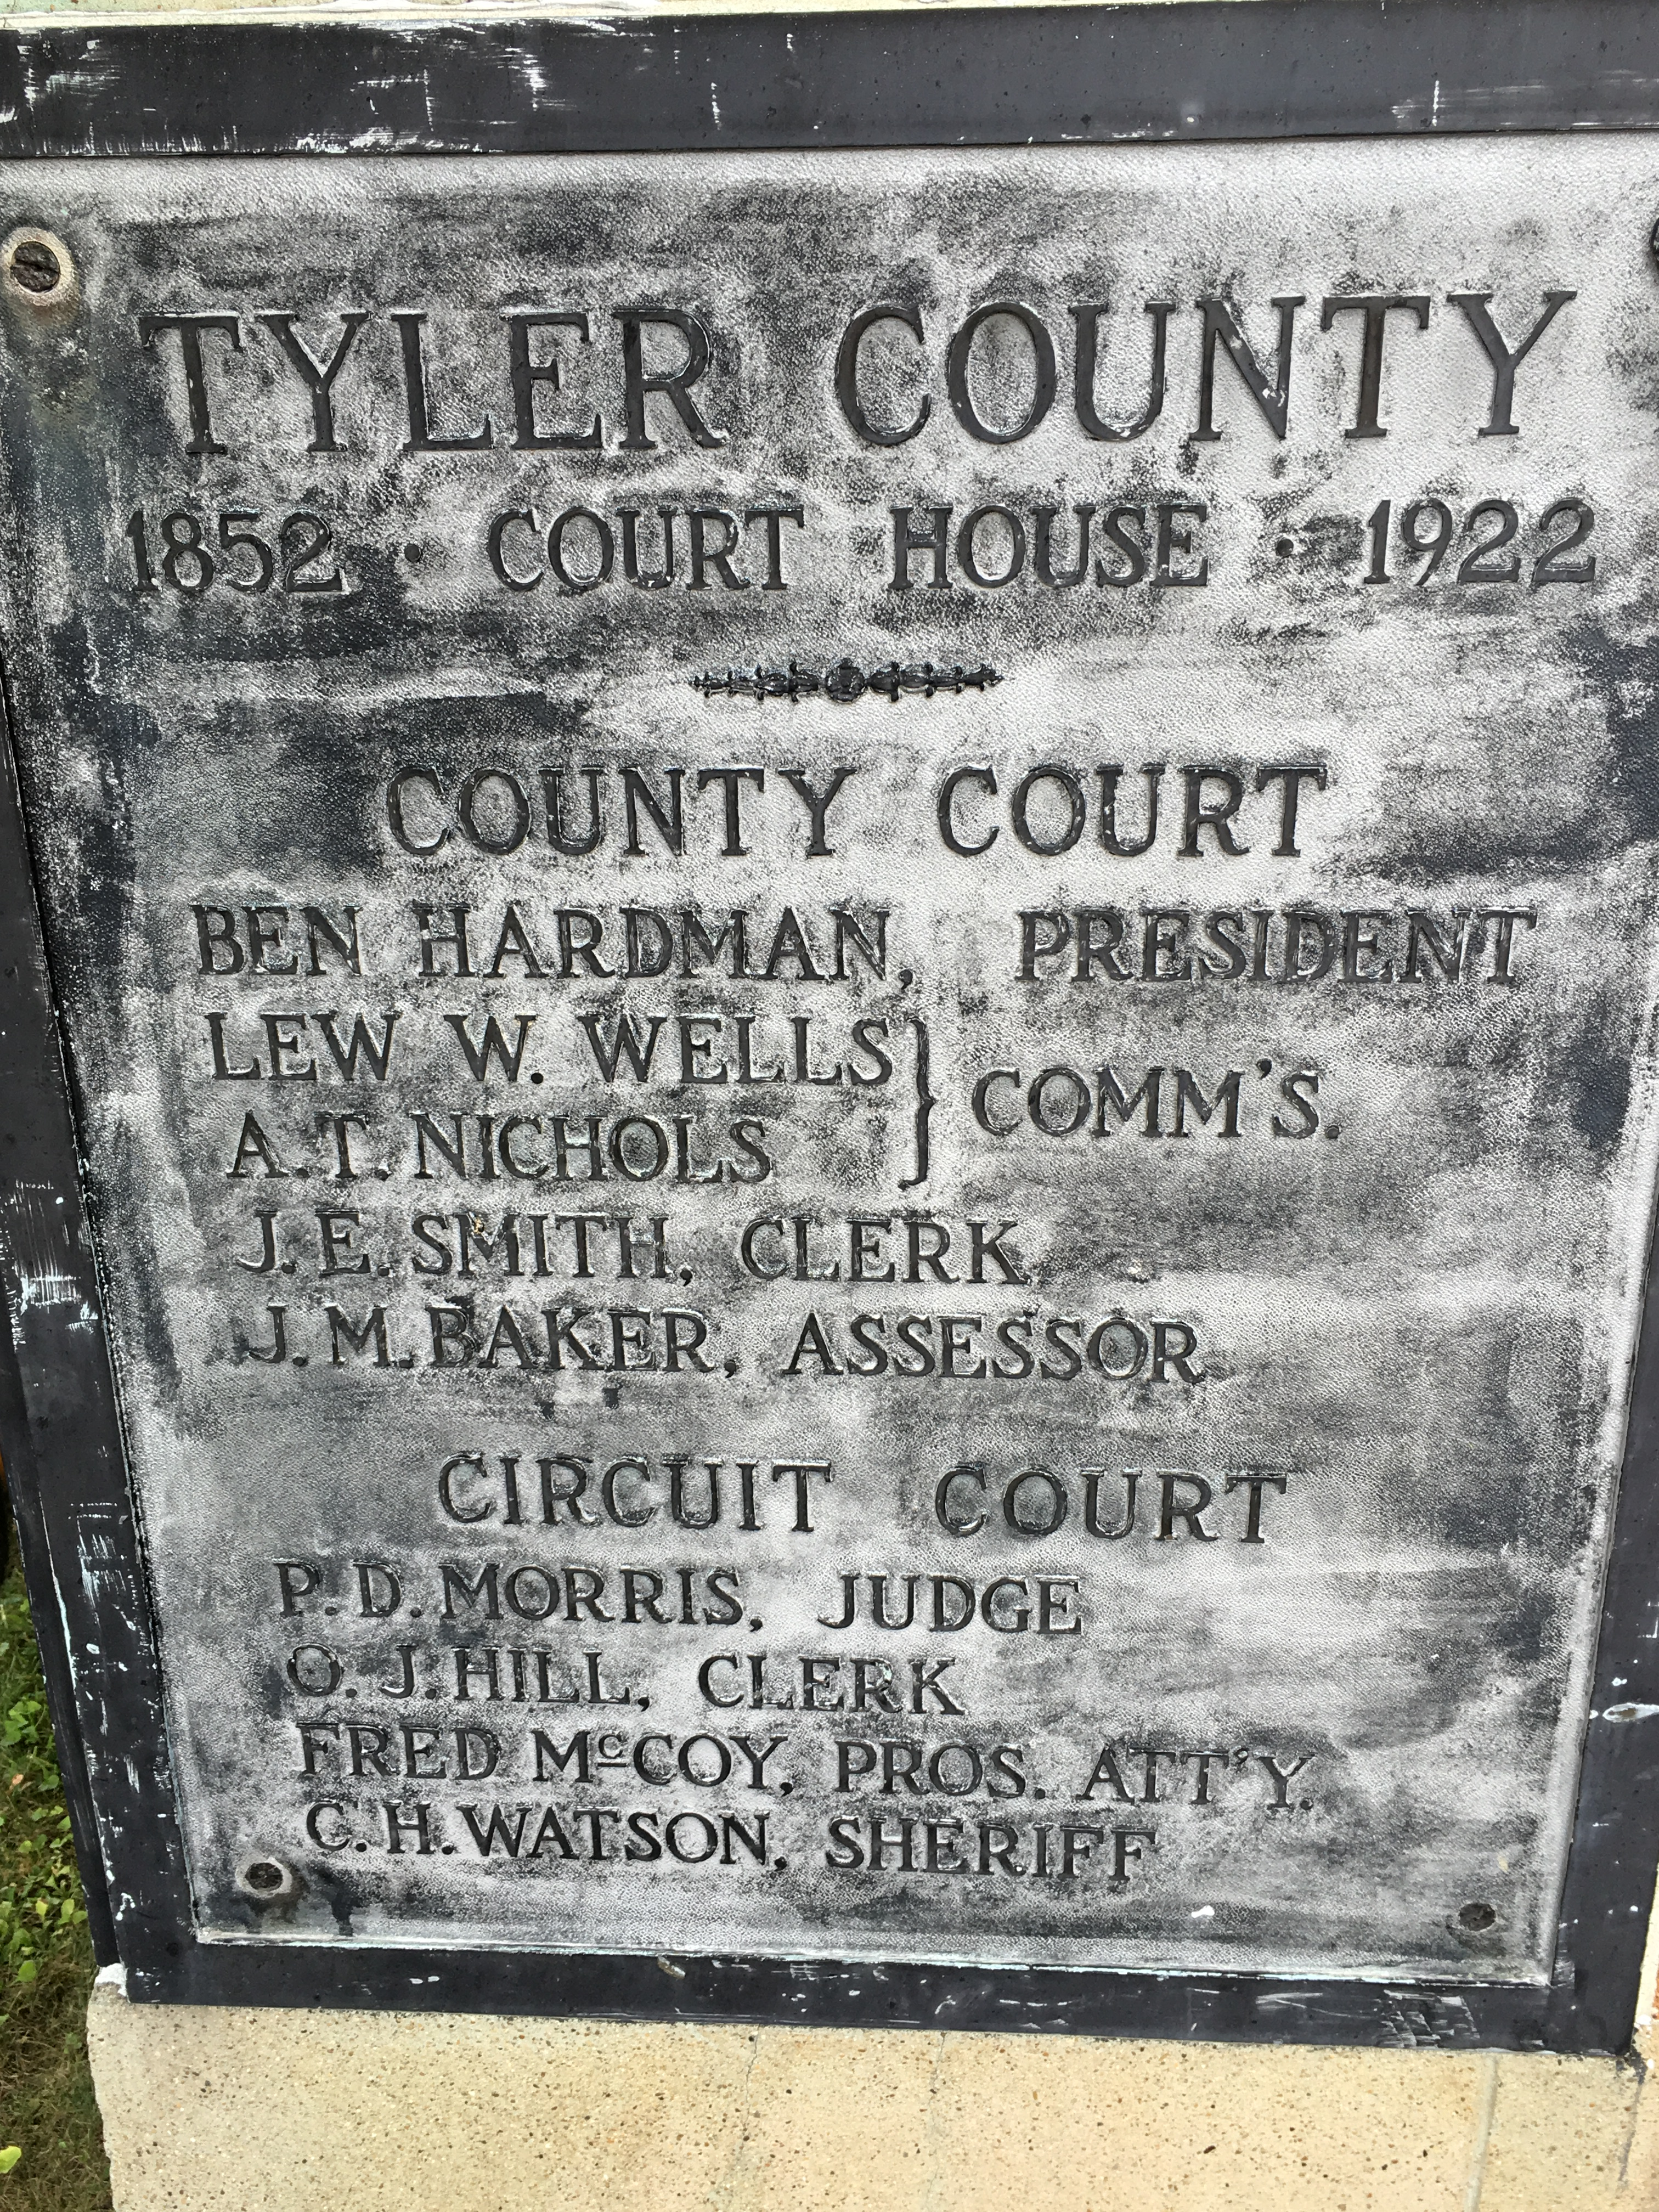 A plaque that pays tribute to the original courthouse (1852-1922).